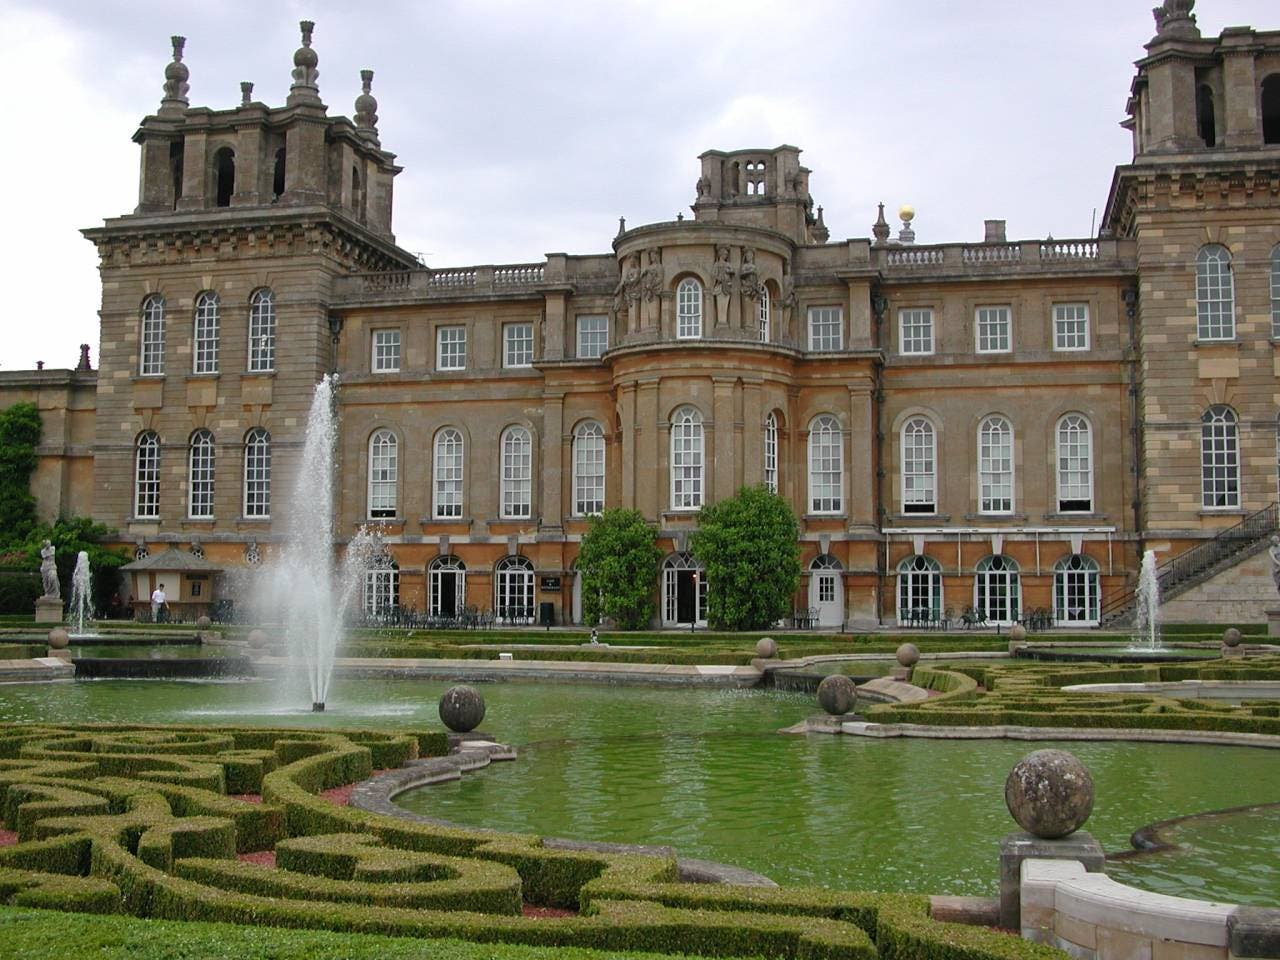 Harry Potter: Blenheim Palace